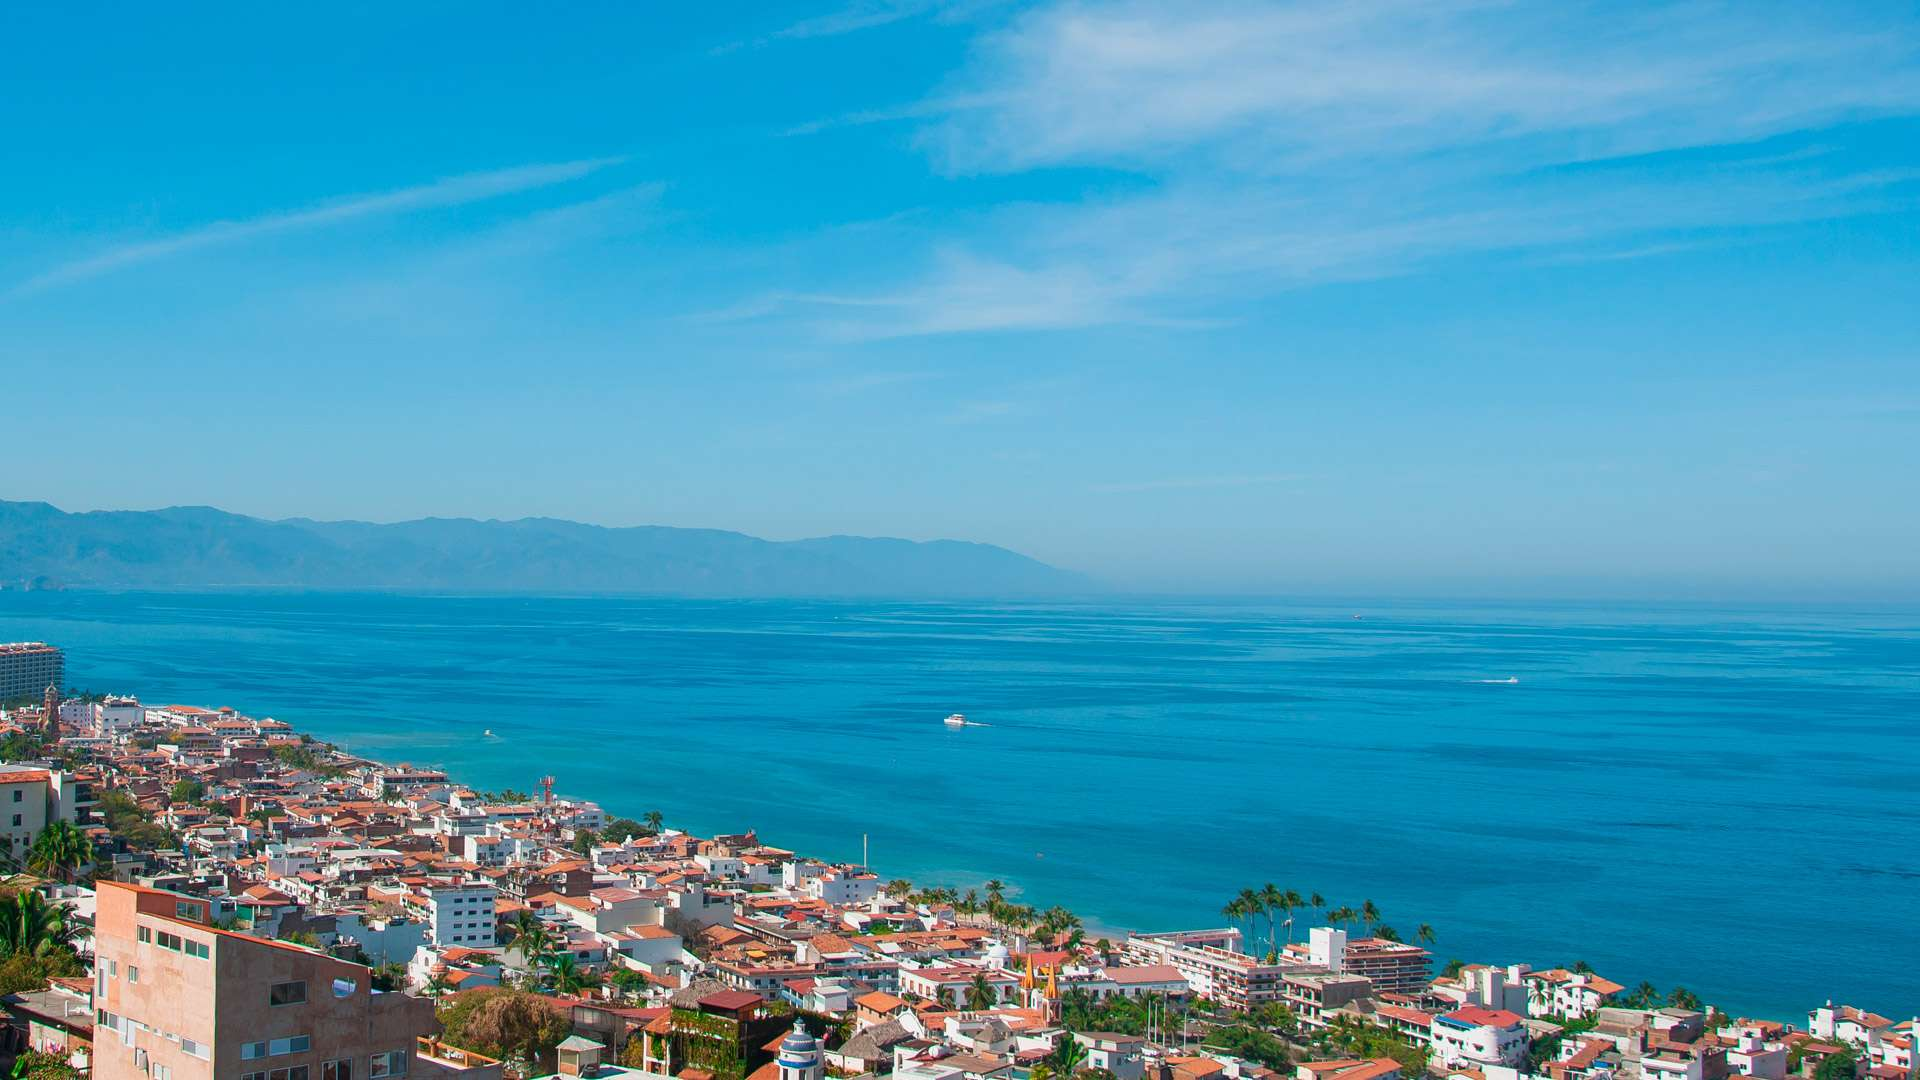 Estero El Salado Unique Things To Do In Puerto Vallarta